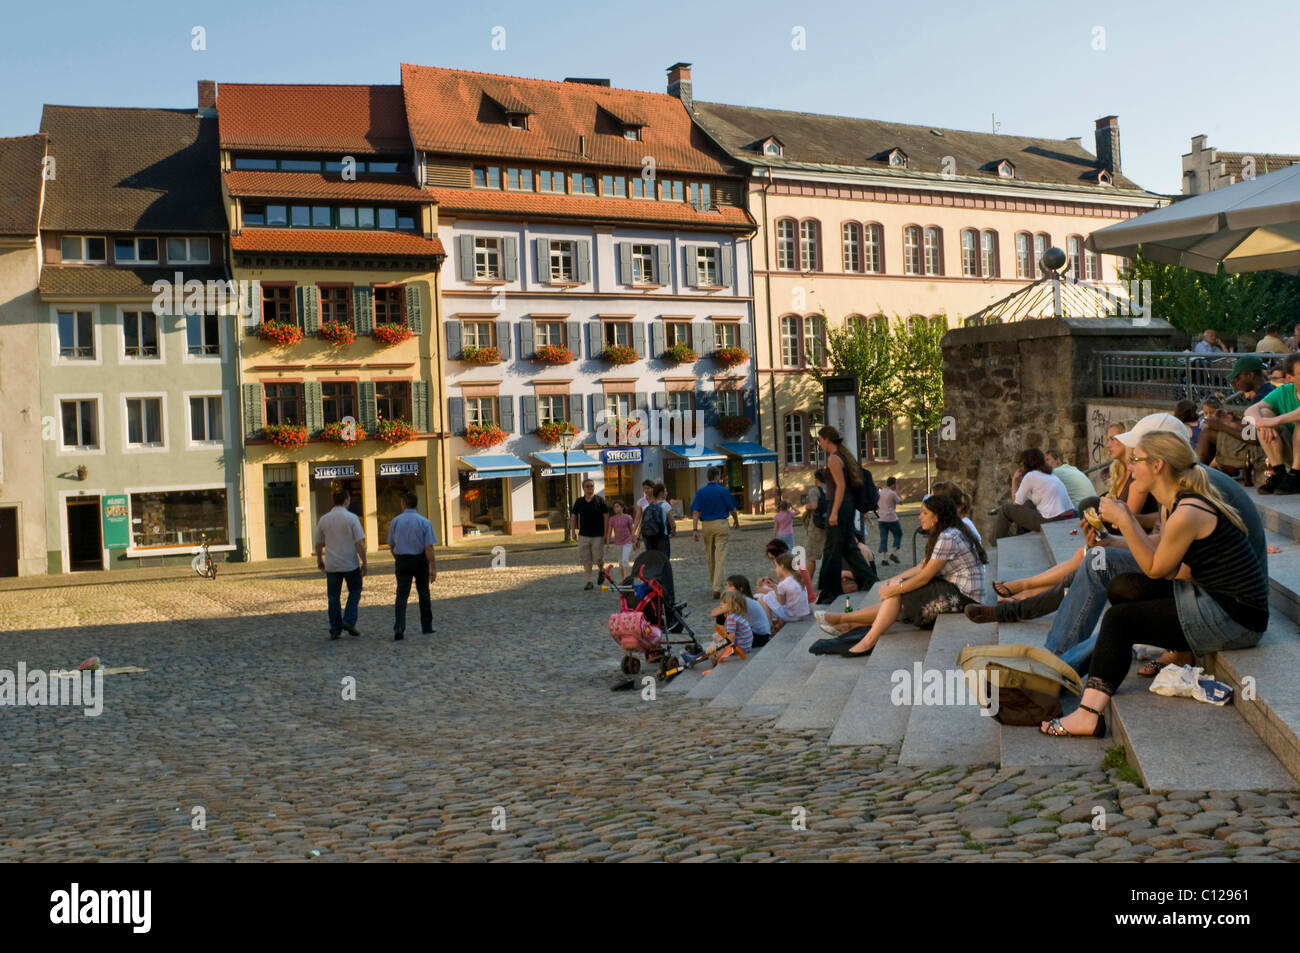 augustinerplatz square freiburg im breisgau baden wuerttemberg stock photo royalty free image. Black Bedroom Furniture Sets. Home Design Ideas